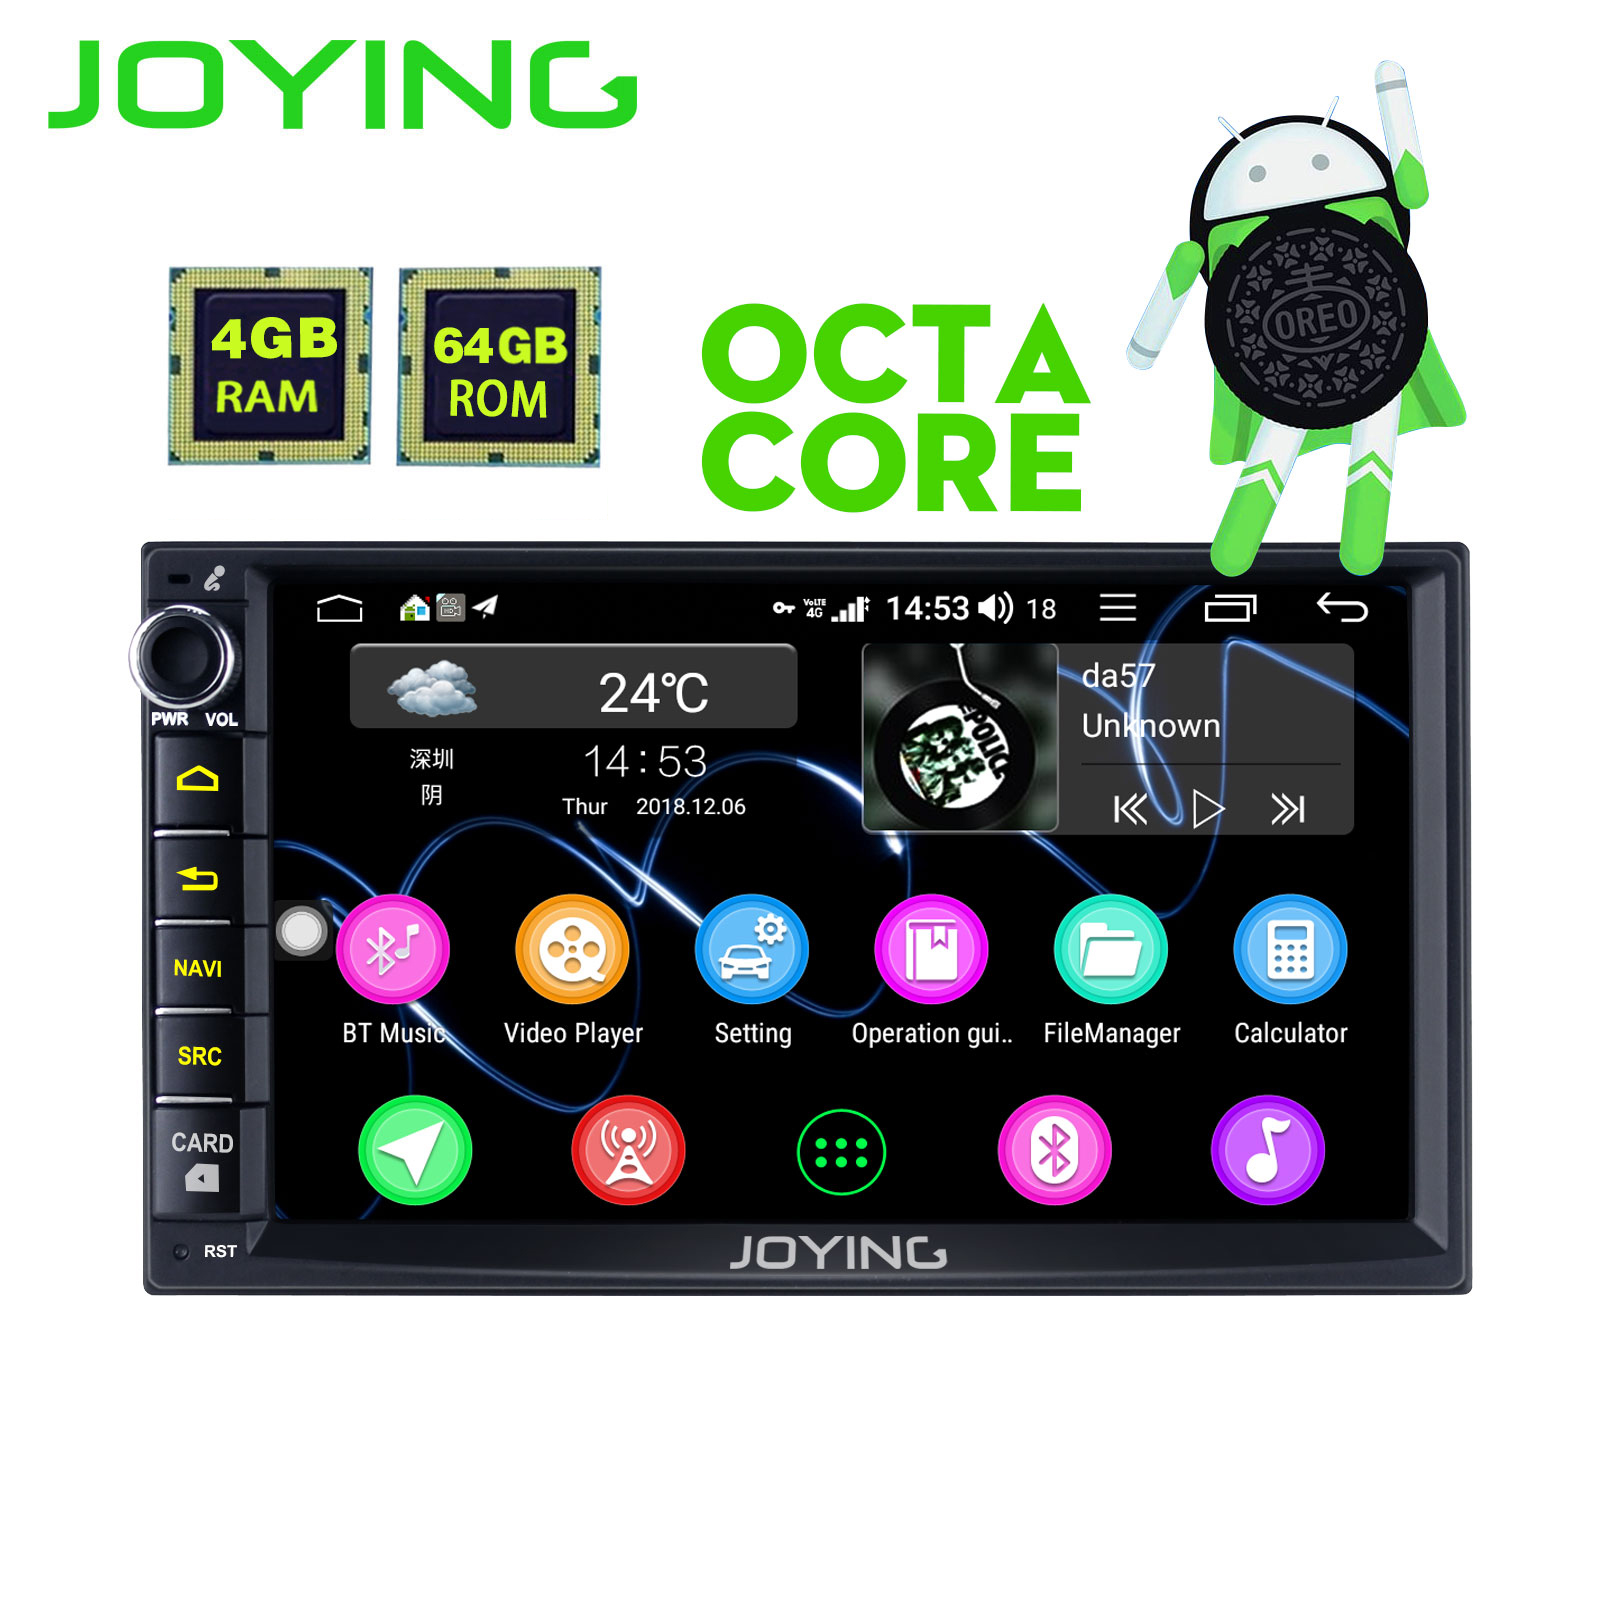 JOYING 2 din car radio player 4GB RAM 64GBROM Octa Core head unit GPS navigation support 4G for Nissan Sentra/Qashqai 2004-2010